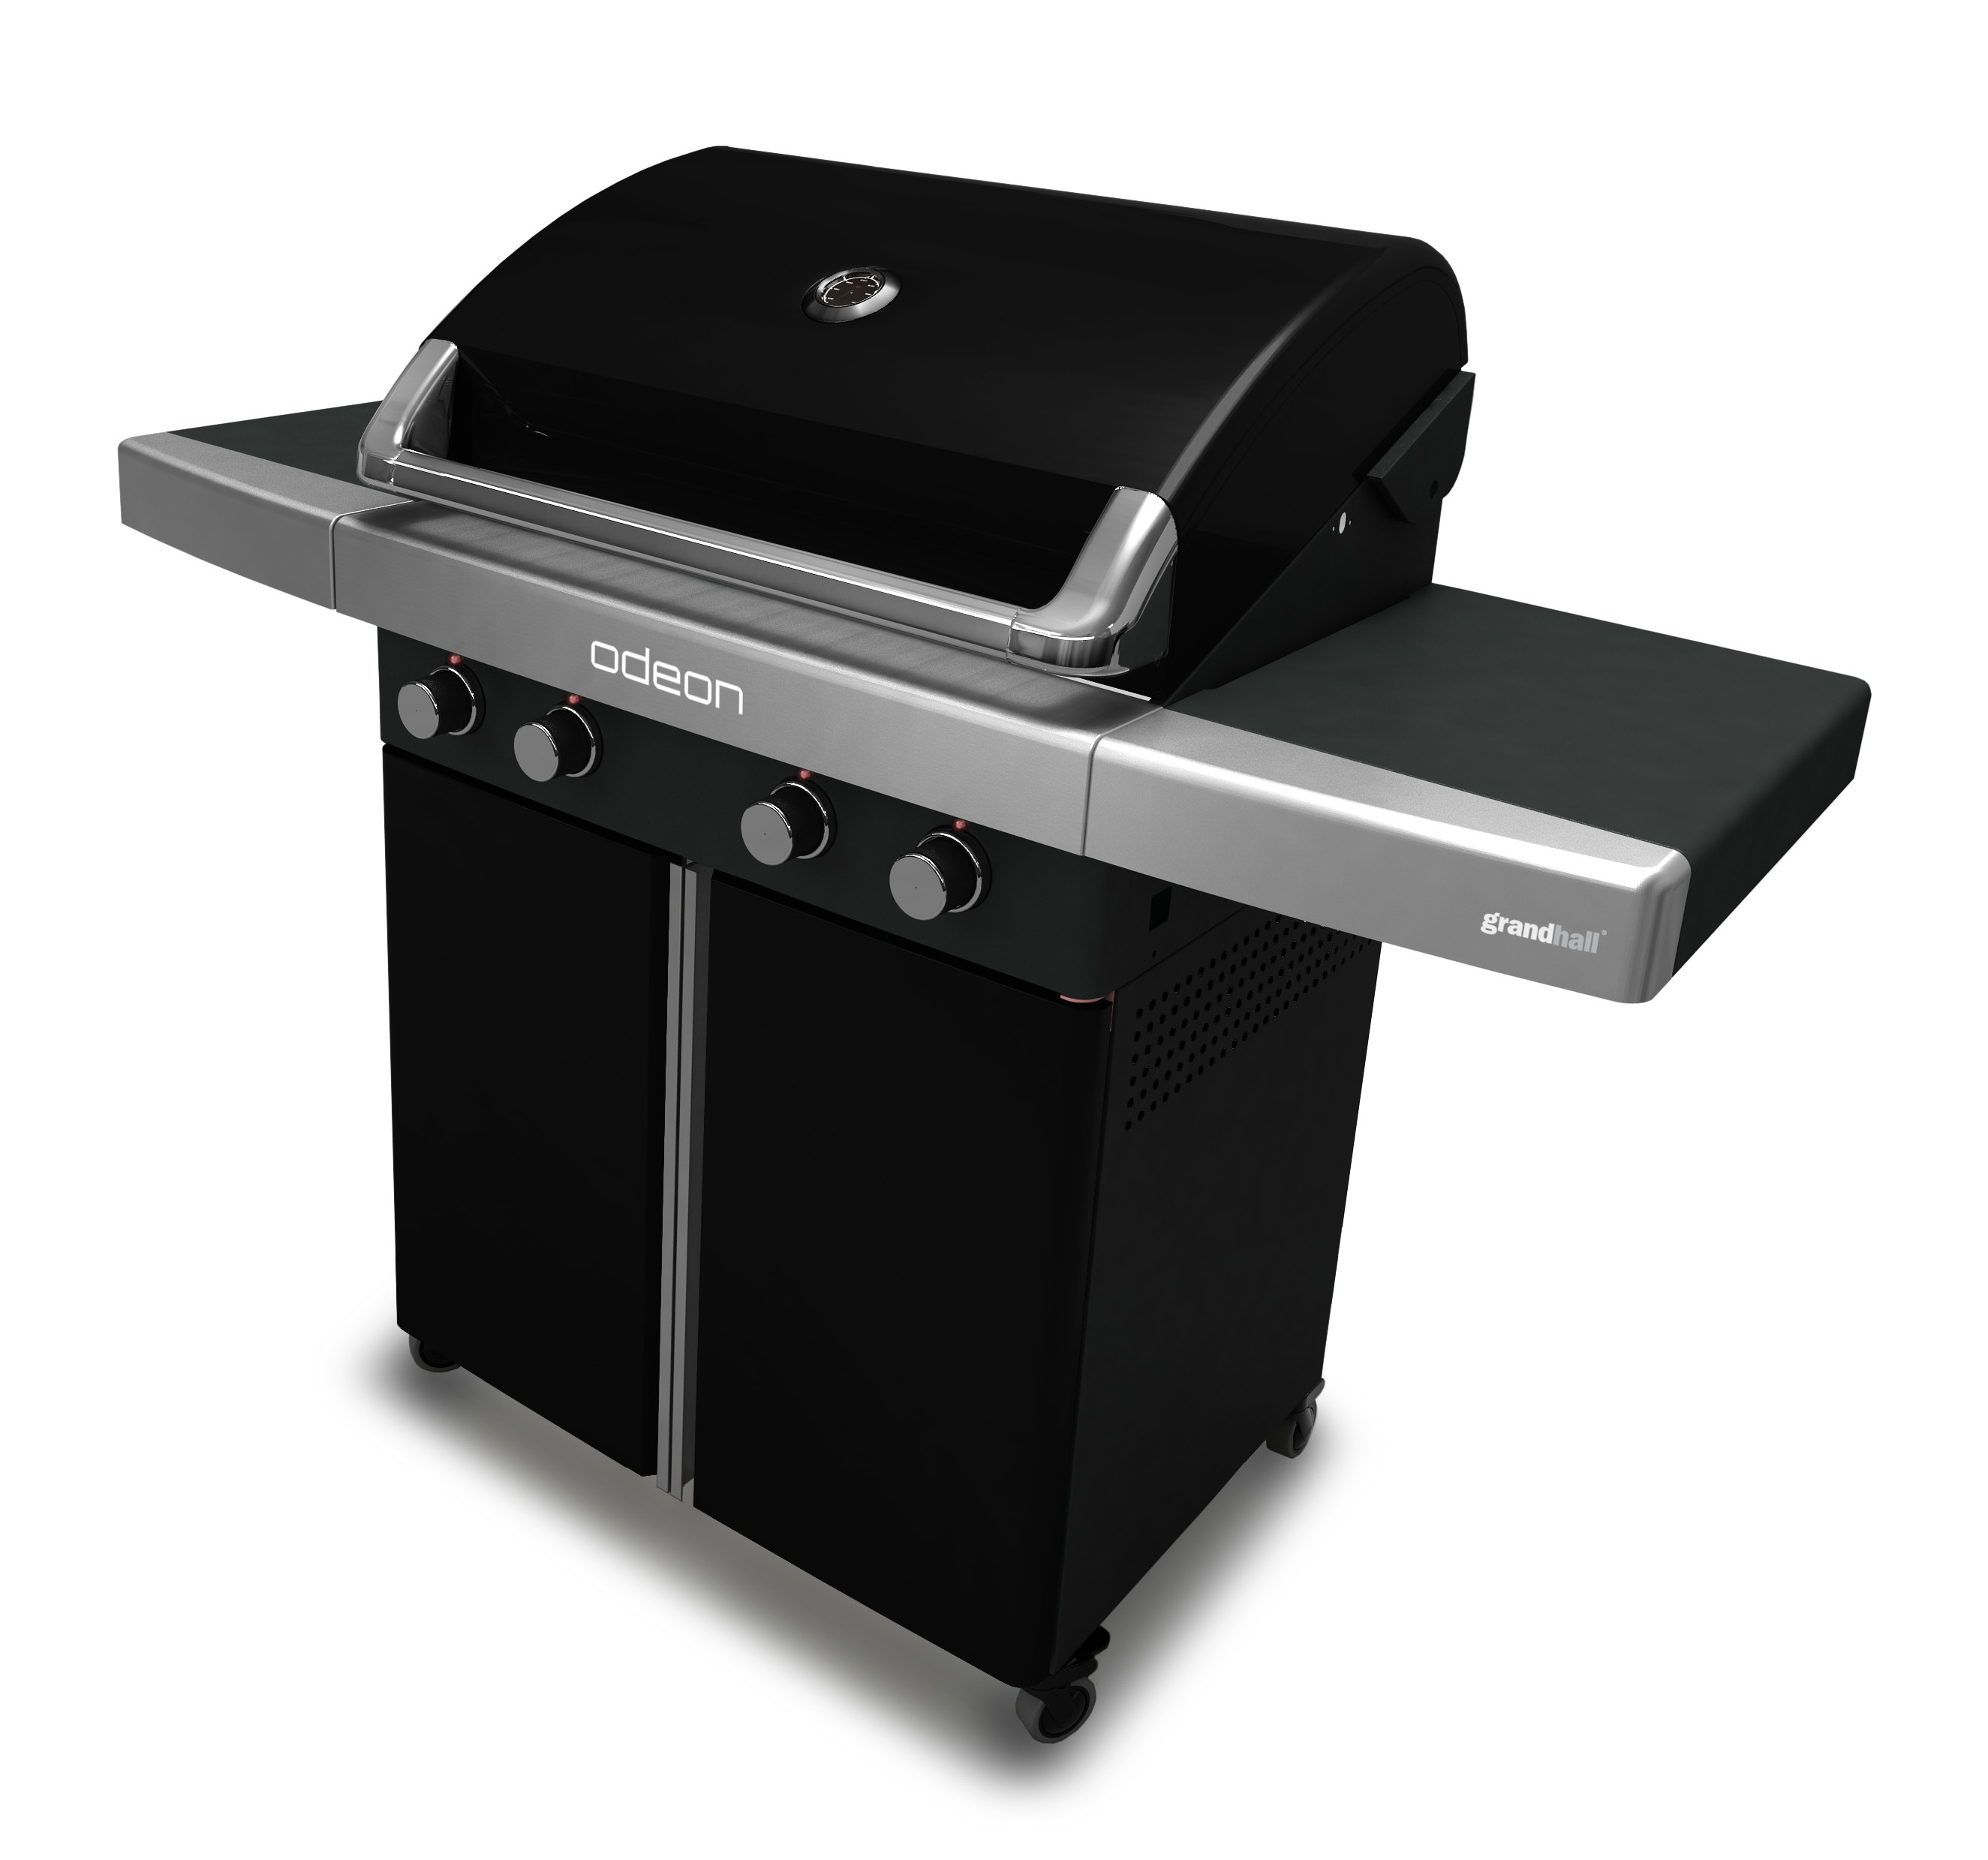 Odeon 32 Grill Black The Barbecue Store Spain